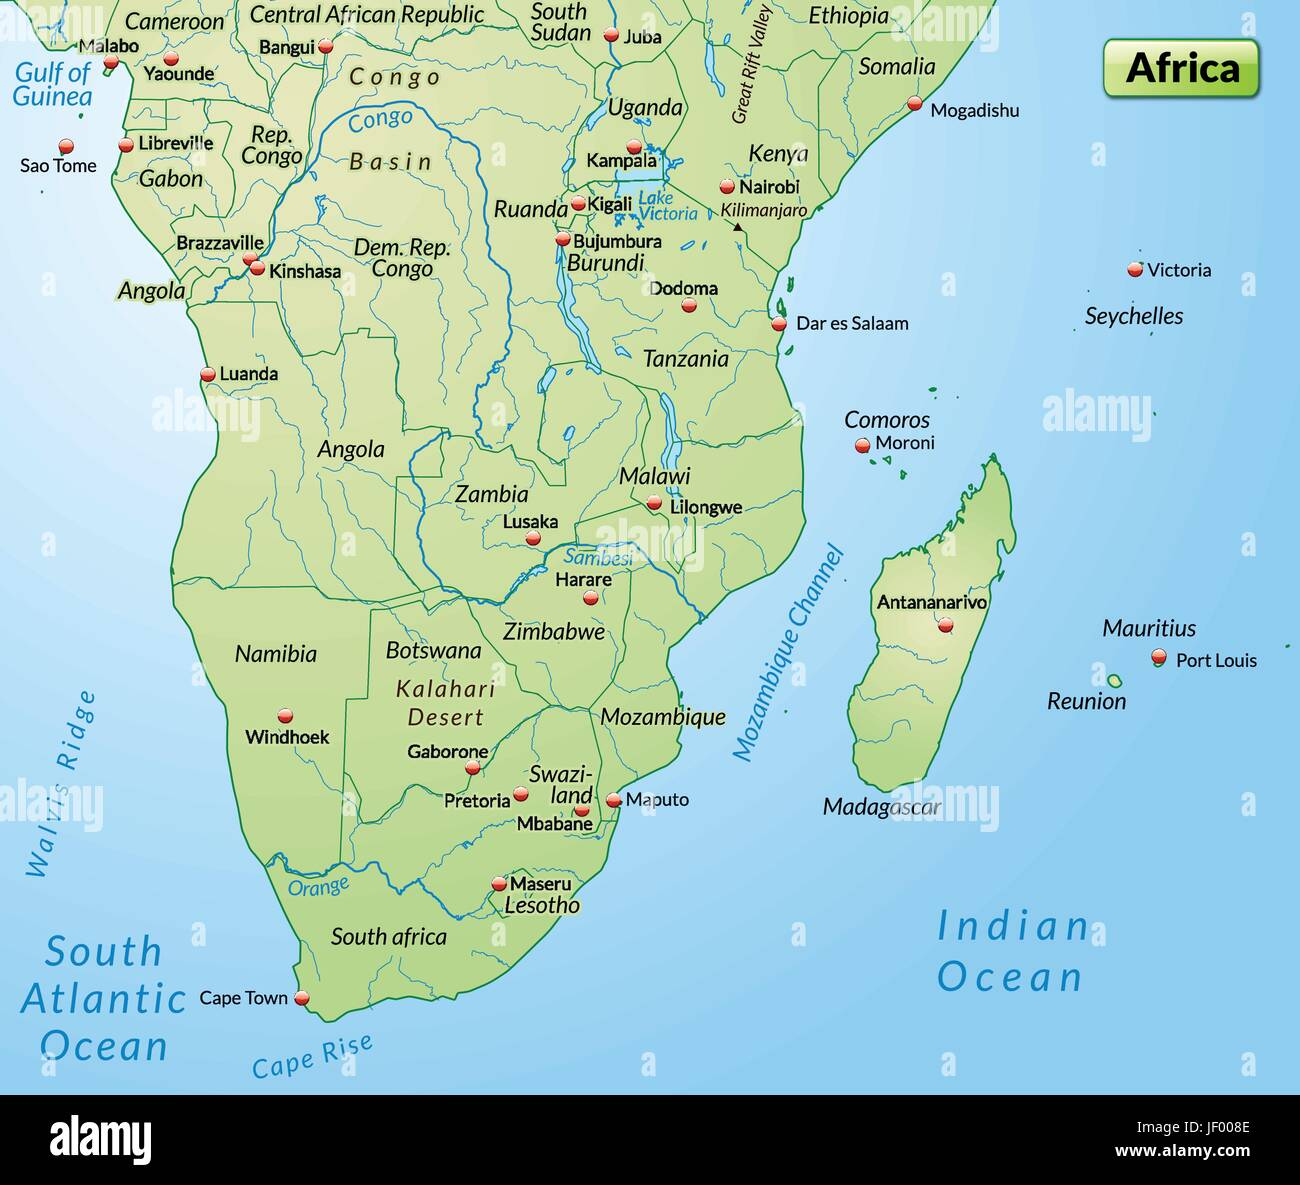 Africa card outline borders atlas map of the world map stock africa card outline borders atlas map of the world map afrikakarte gumiabroncs Images